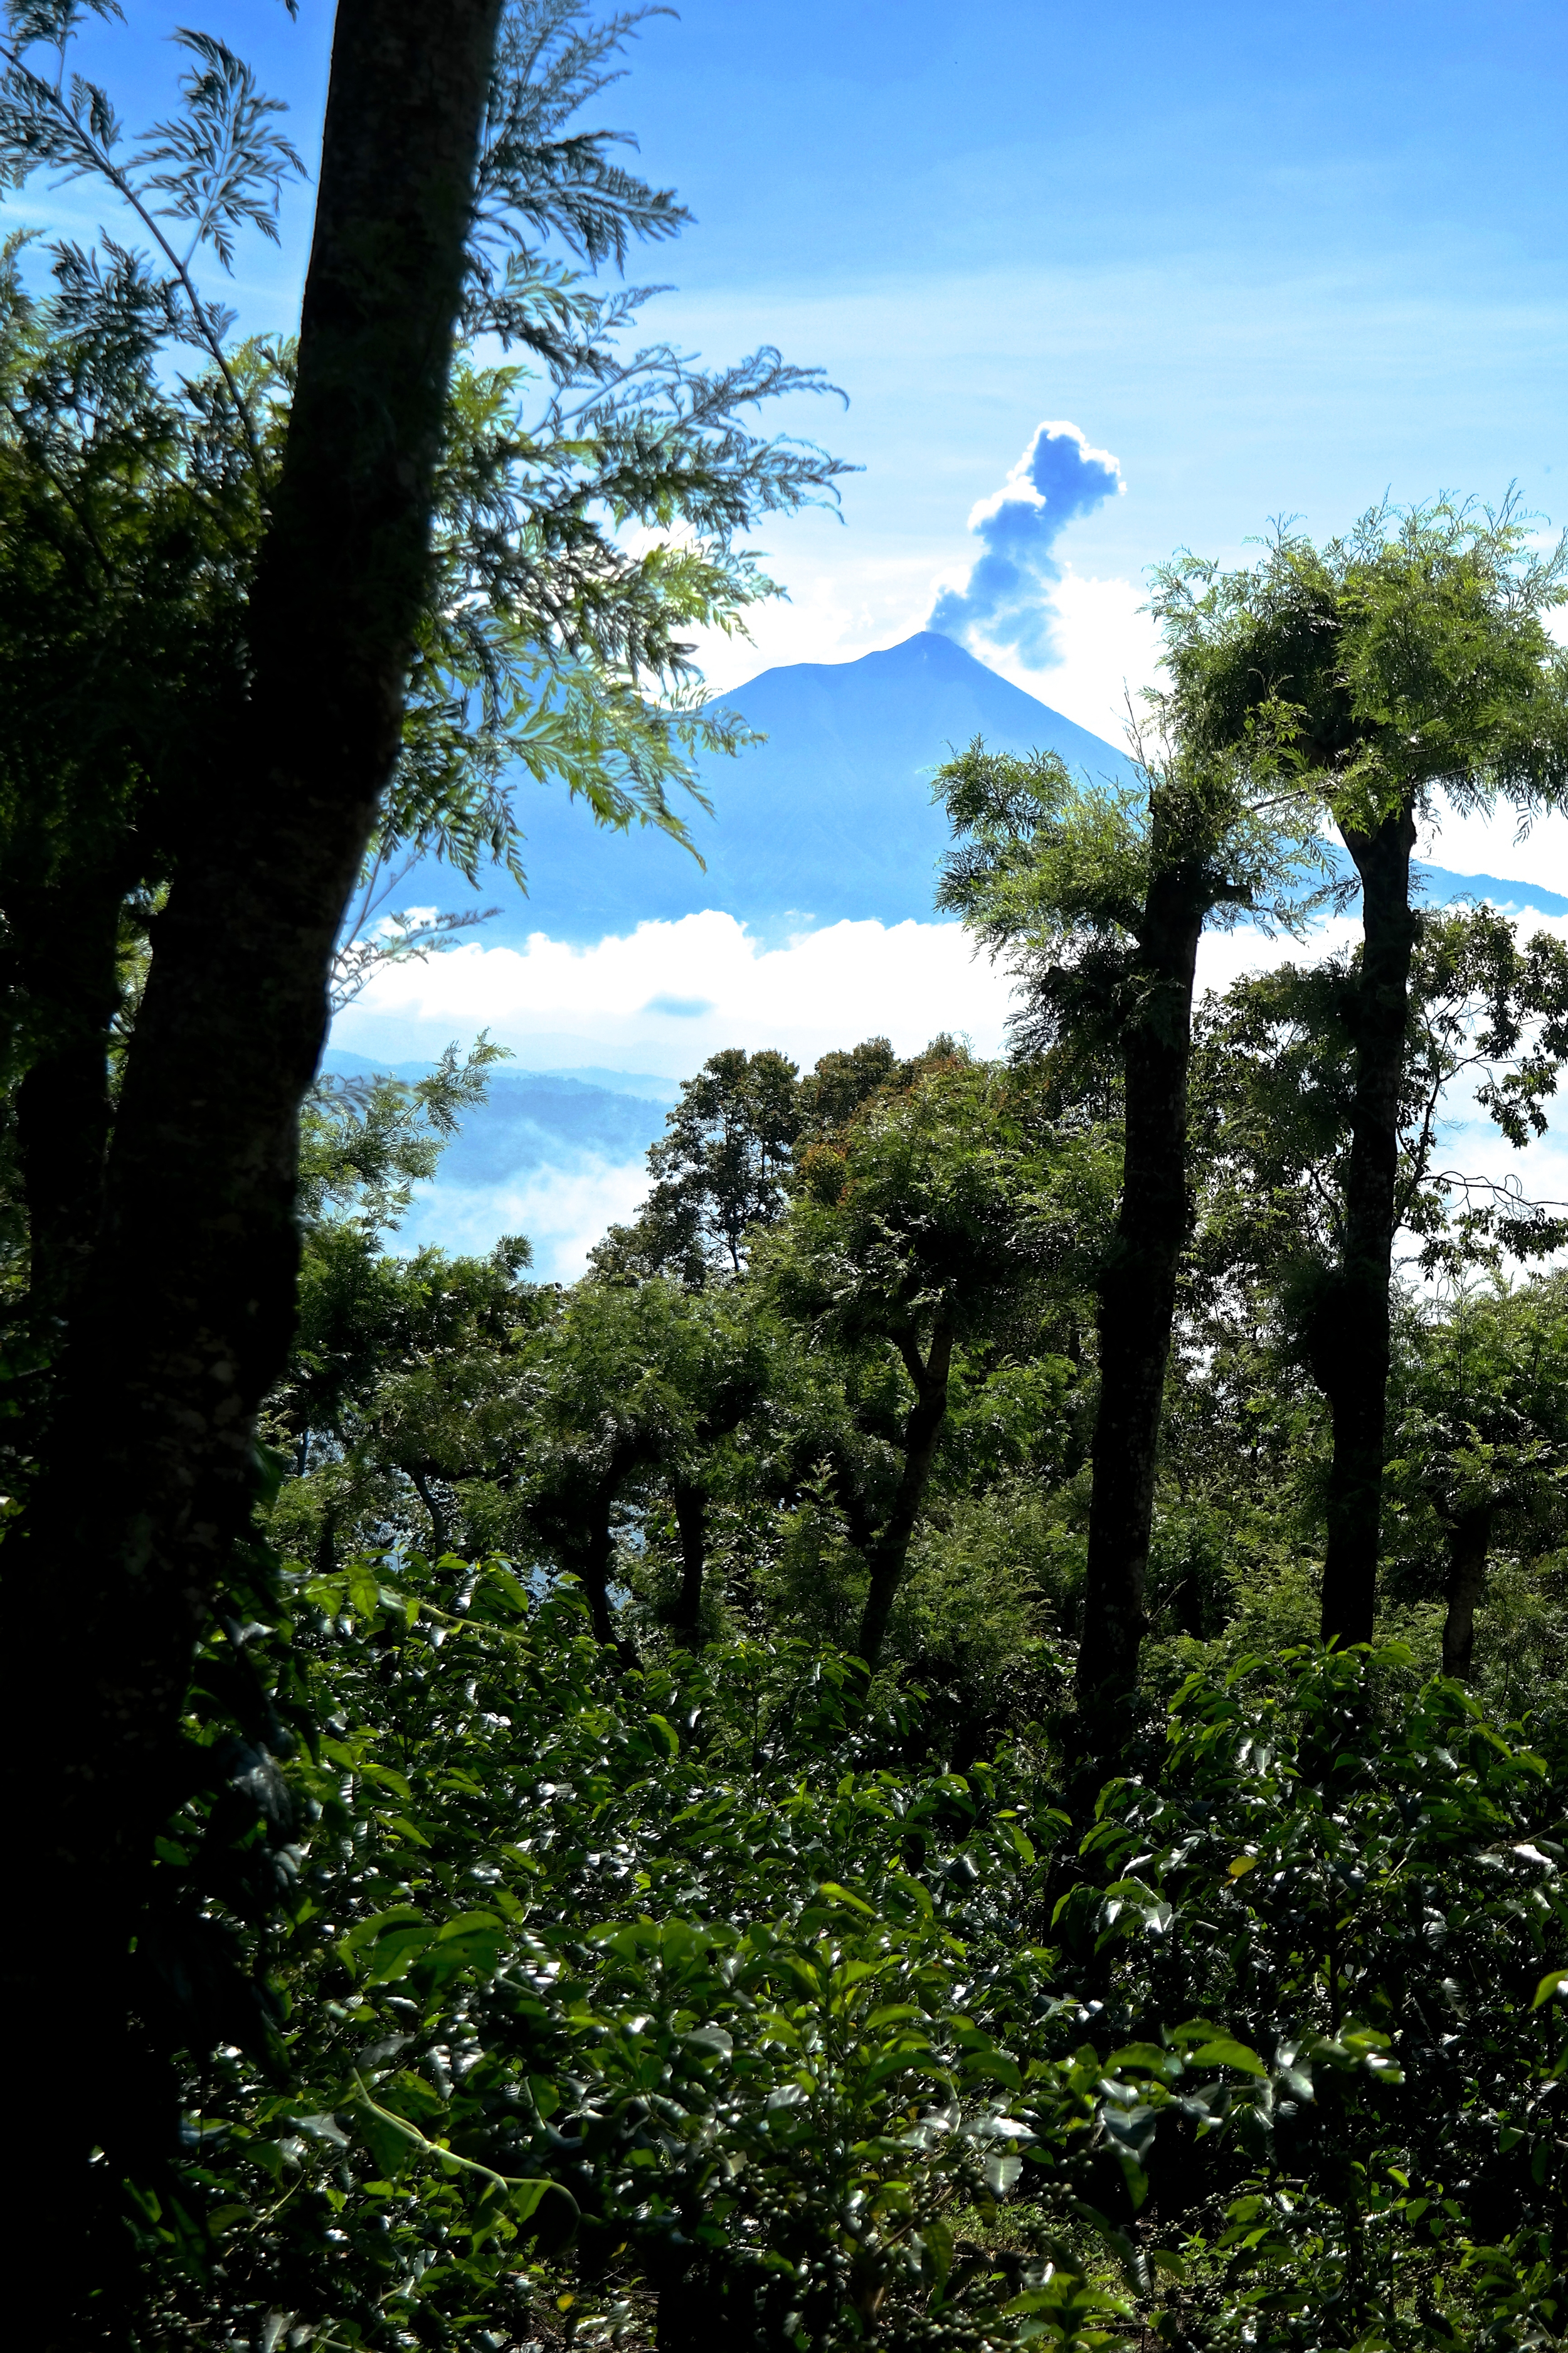 Geisha plants with Volcan Fuego in the background.